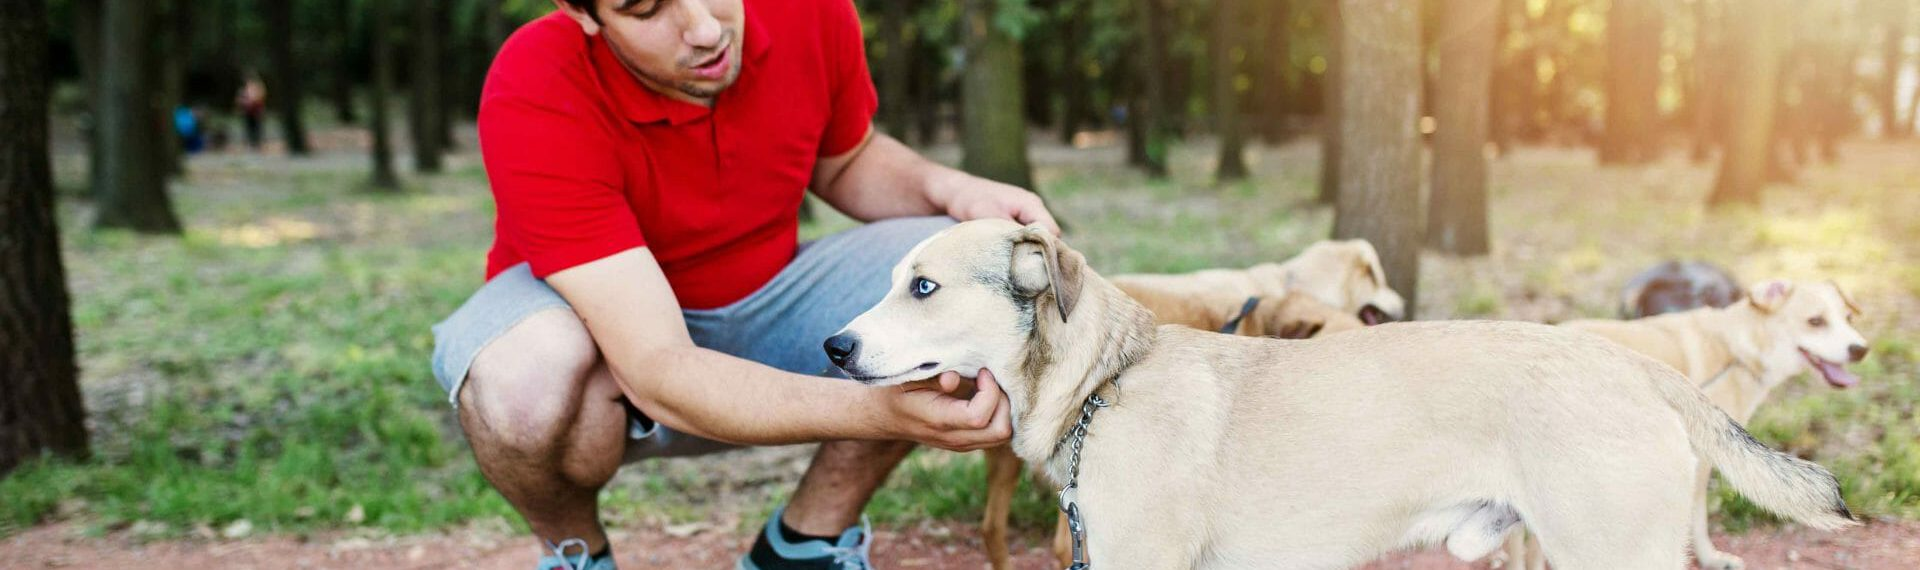 How much does Dog Walking Insurance cost?